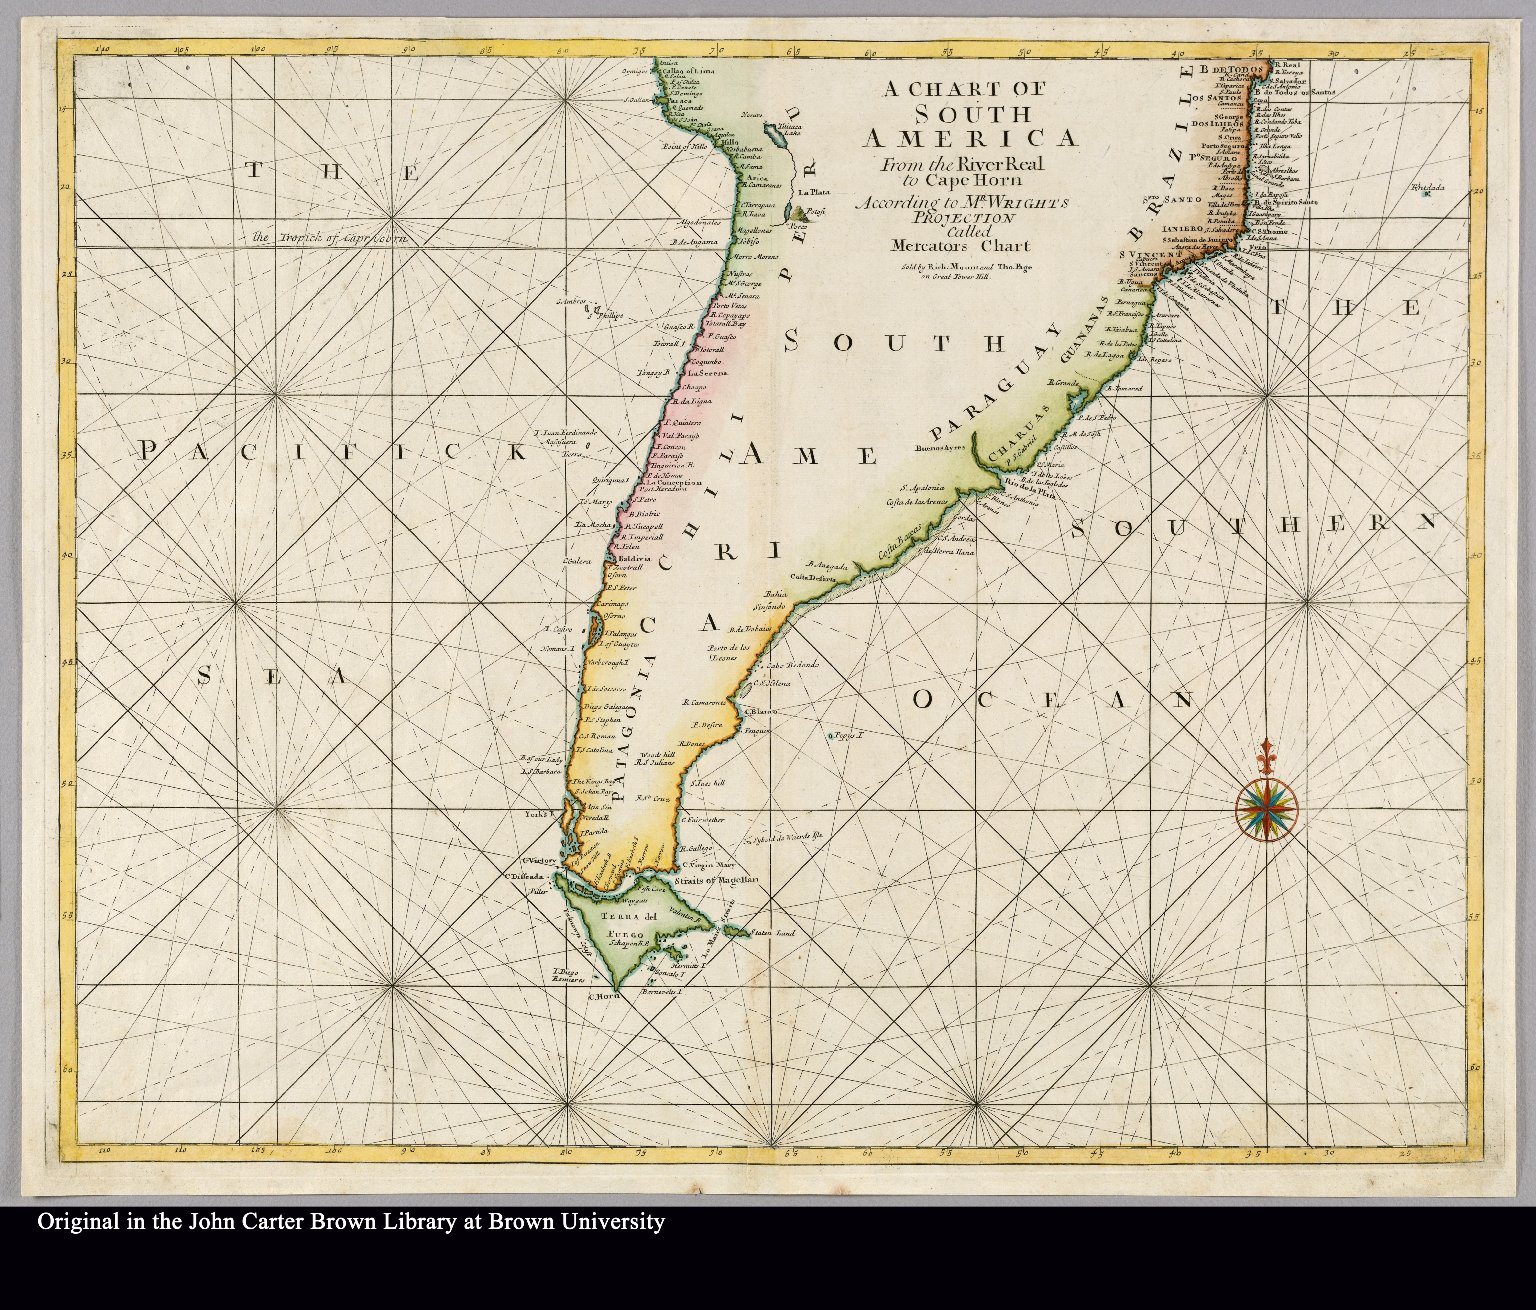 Cape Horn On South America Map.A Chart Of South America From The River Real To Cape Horn According